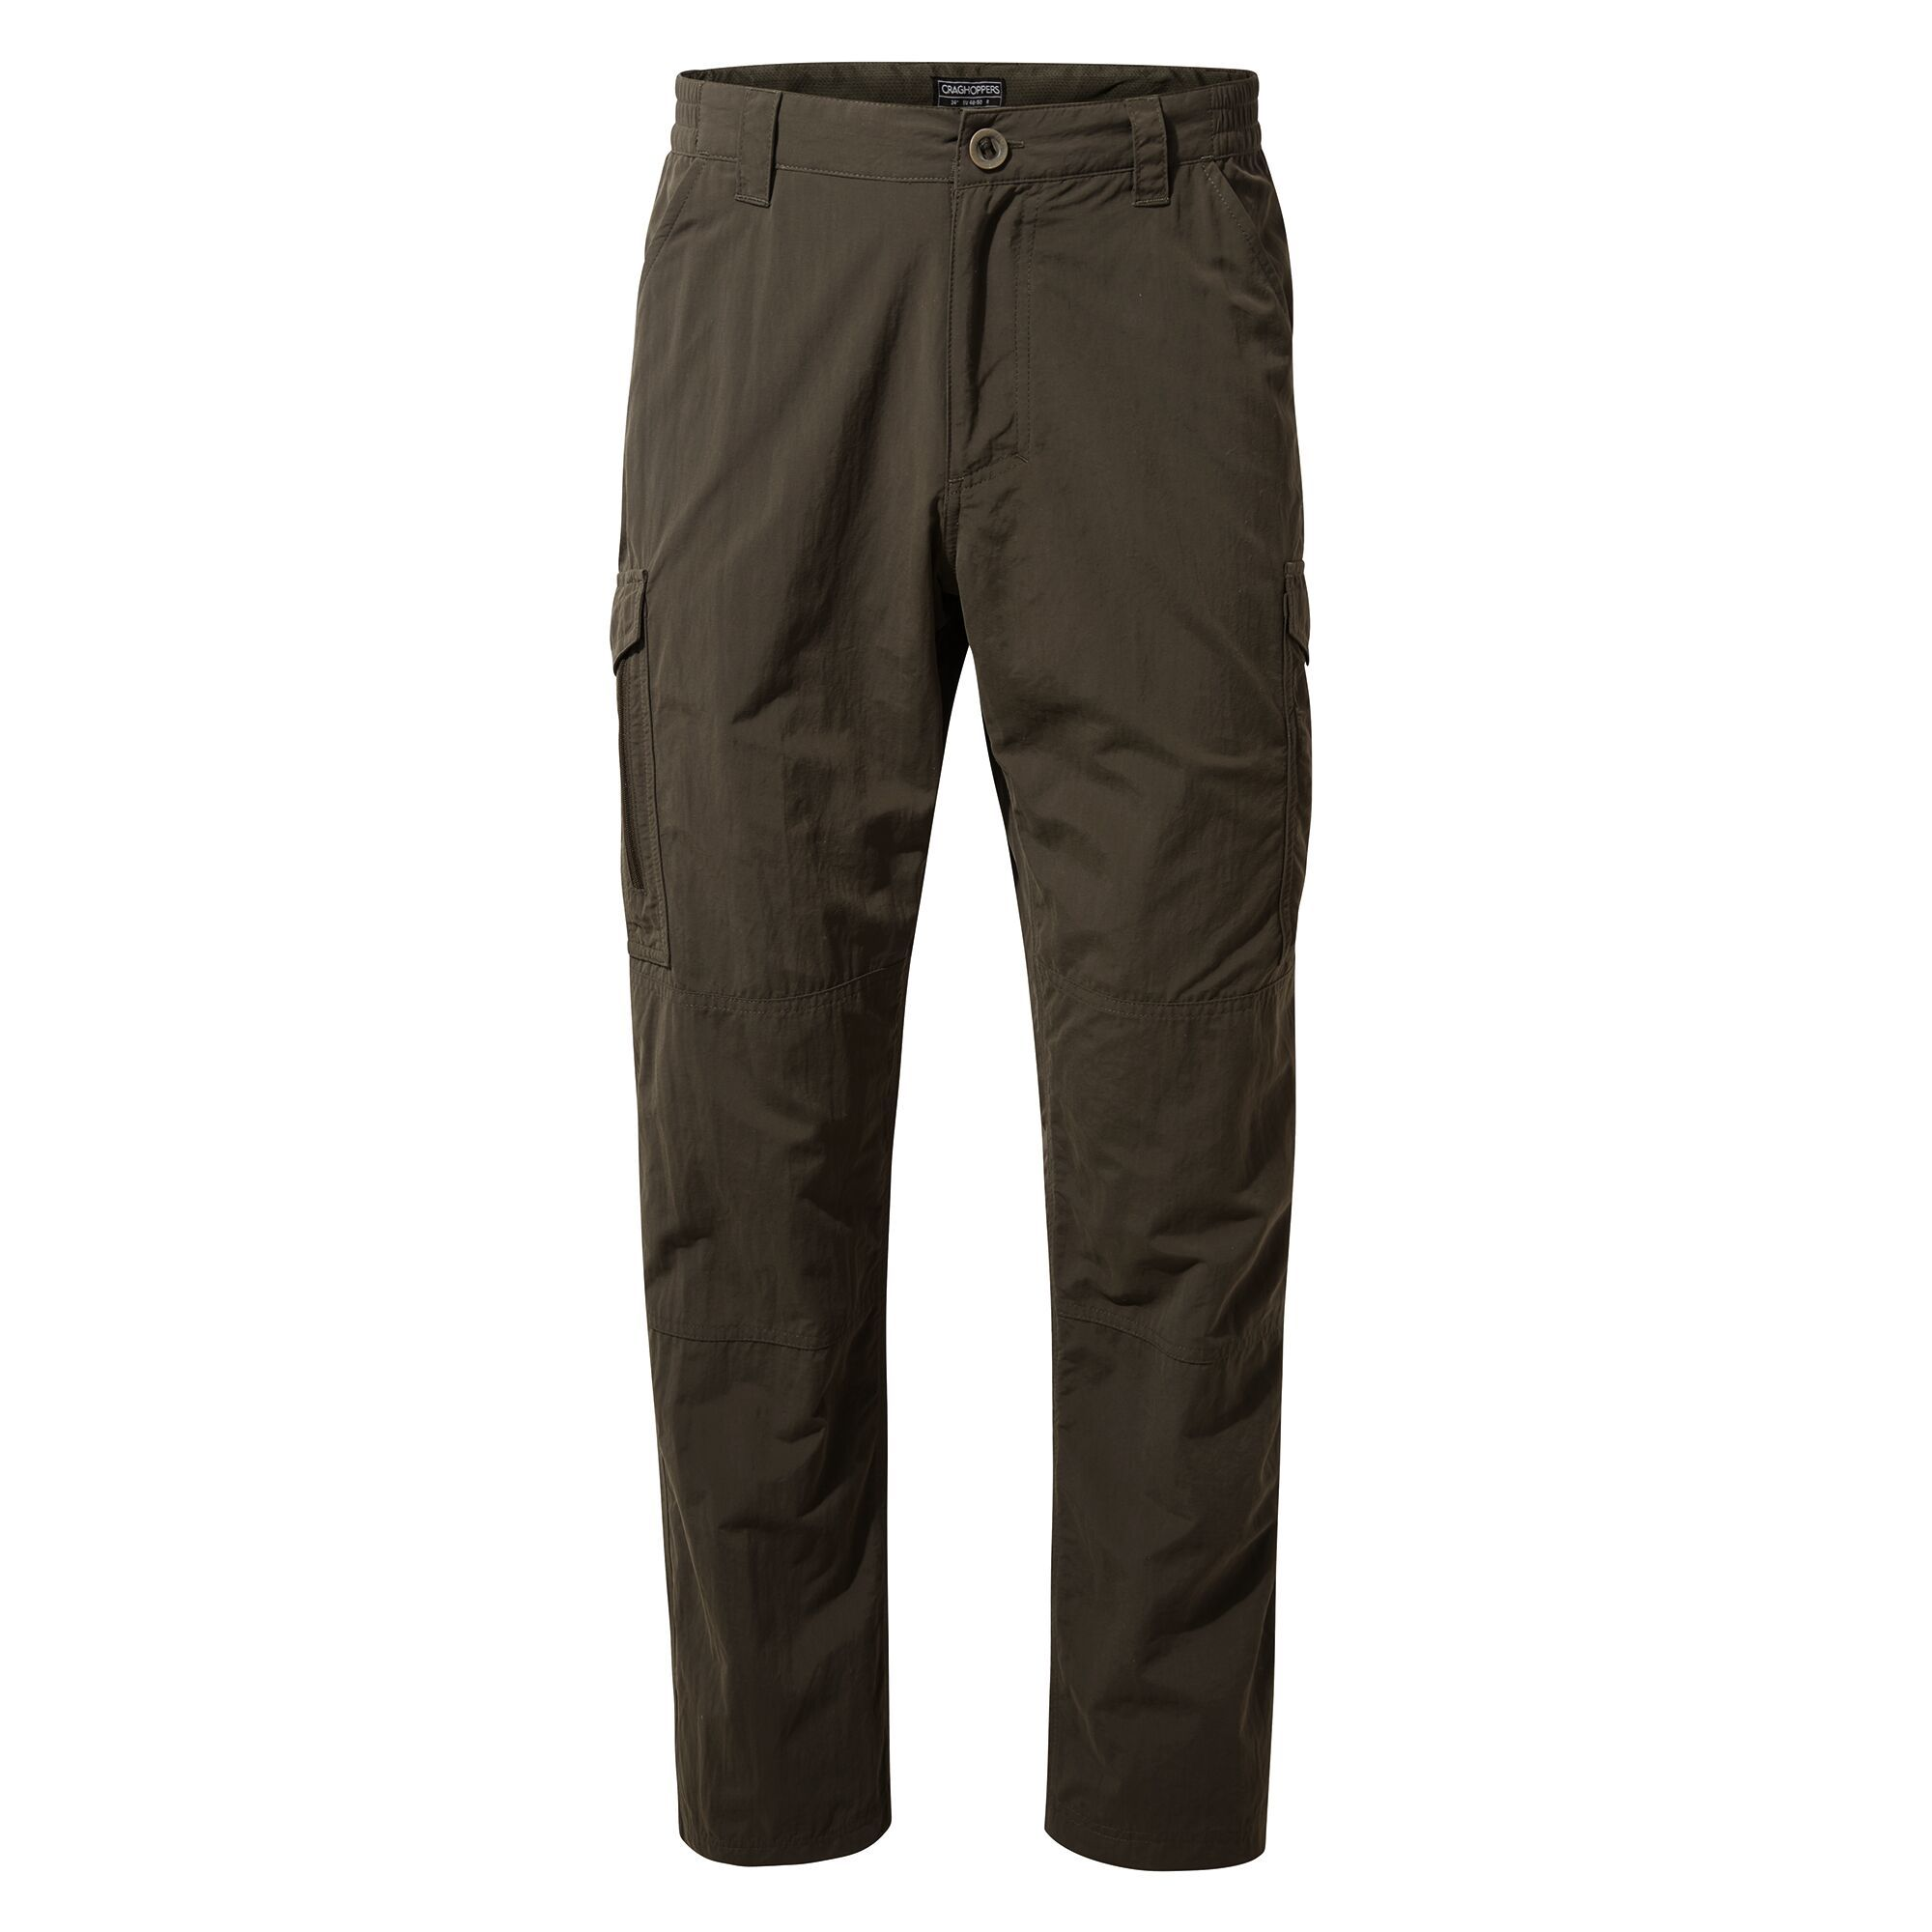 Craghoppers Mens Cargo Trousers (42S) (Woodland Green)